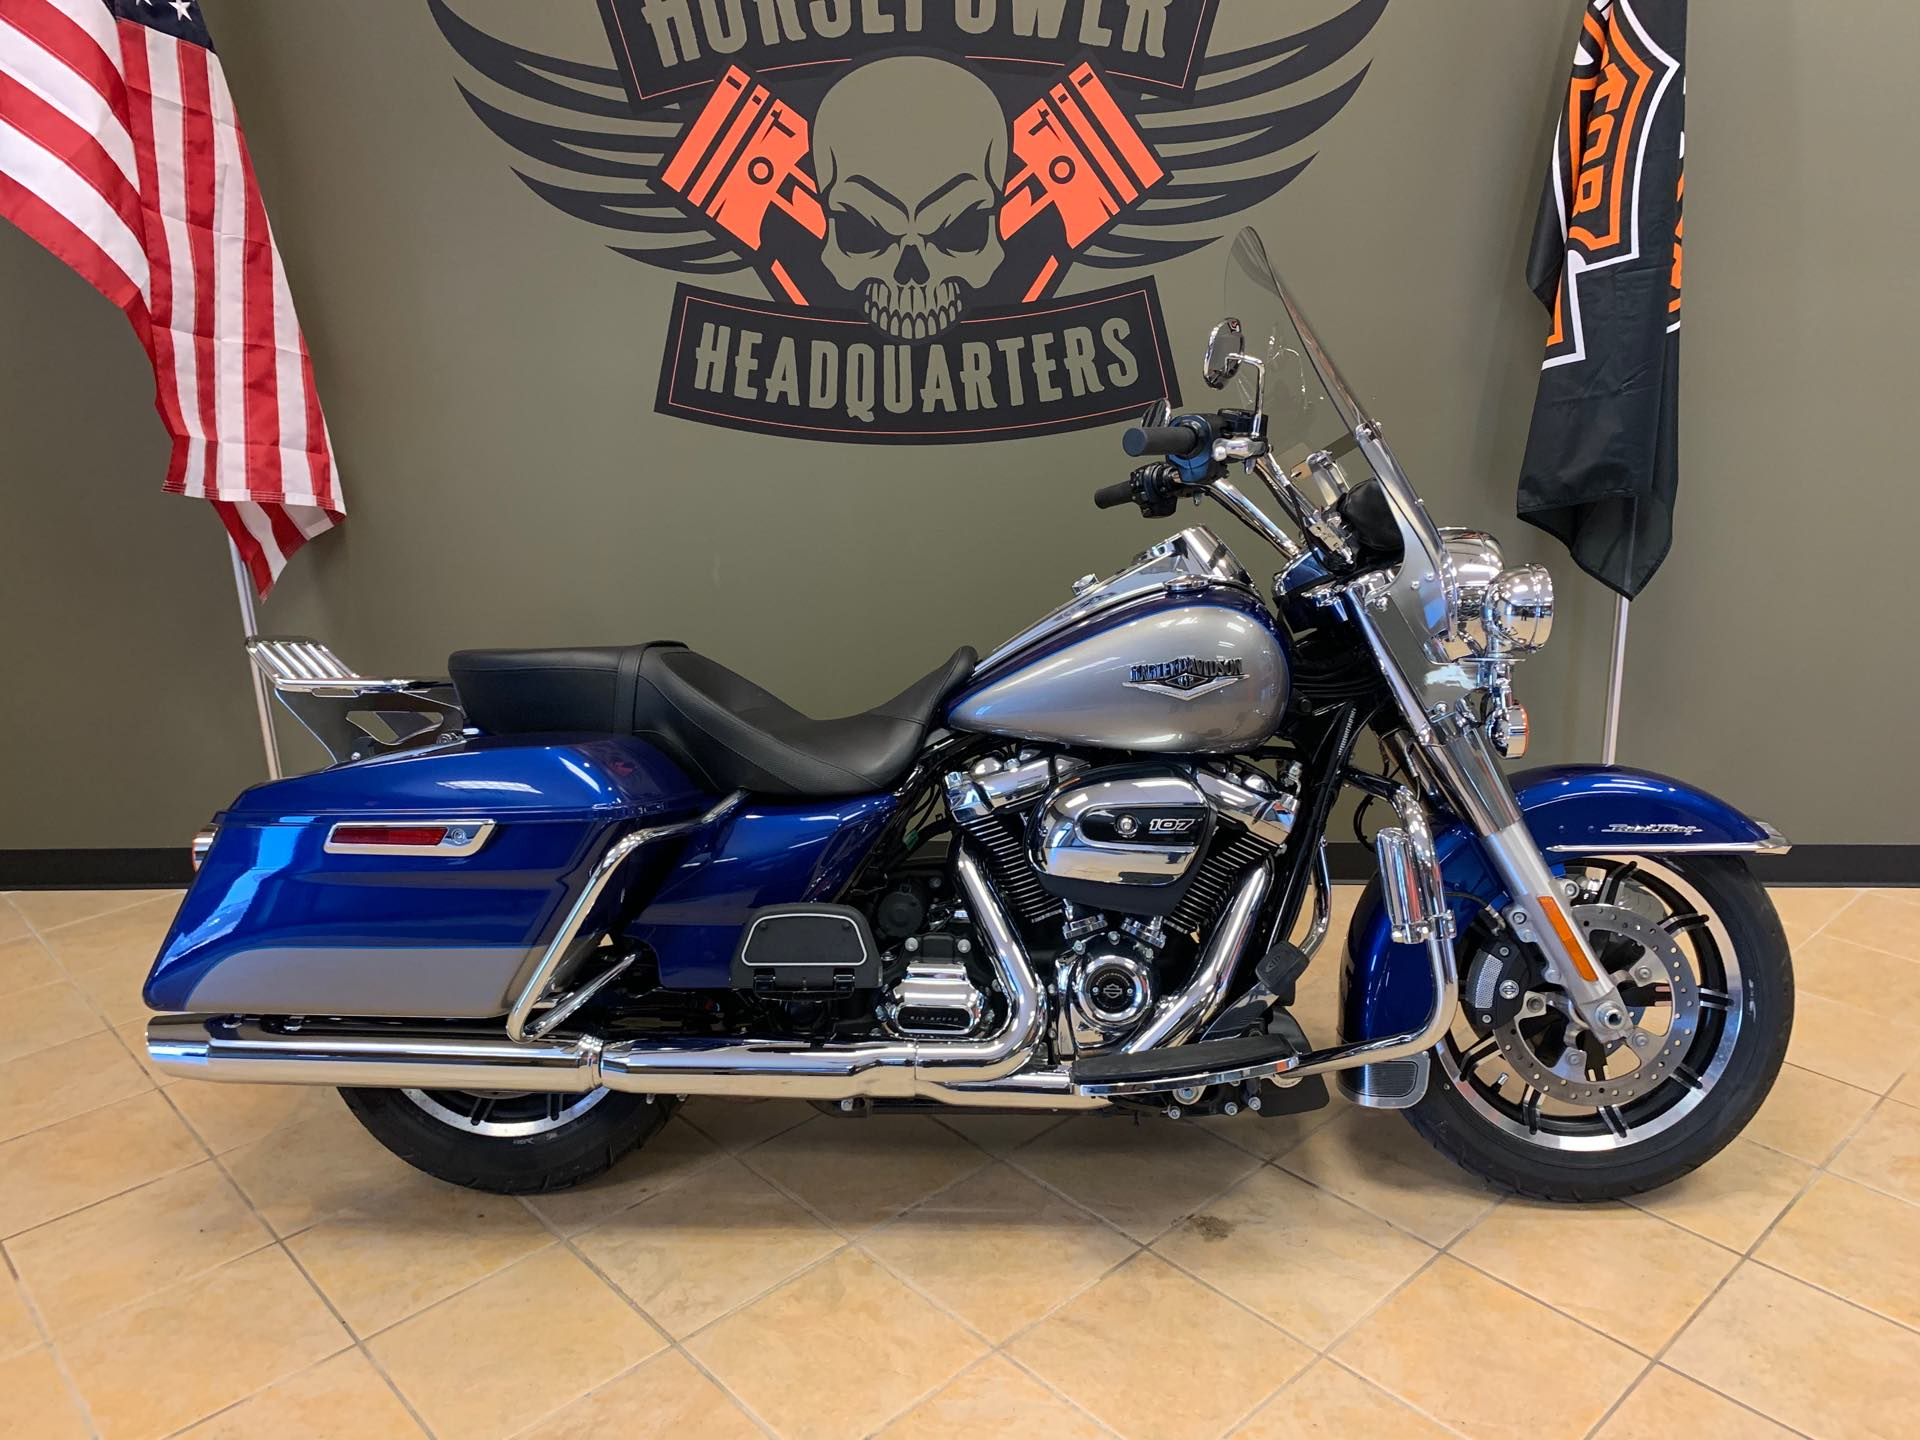 2017 Harley-Davidson Road King Base at Loess Hills Harley-Davidson